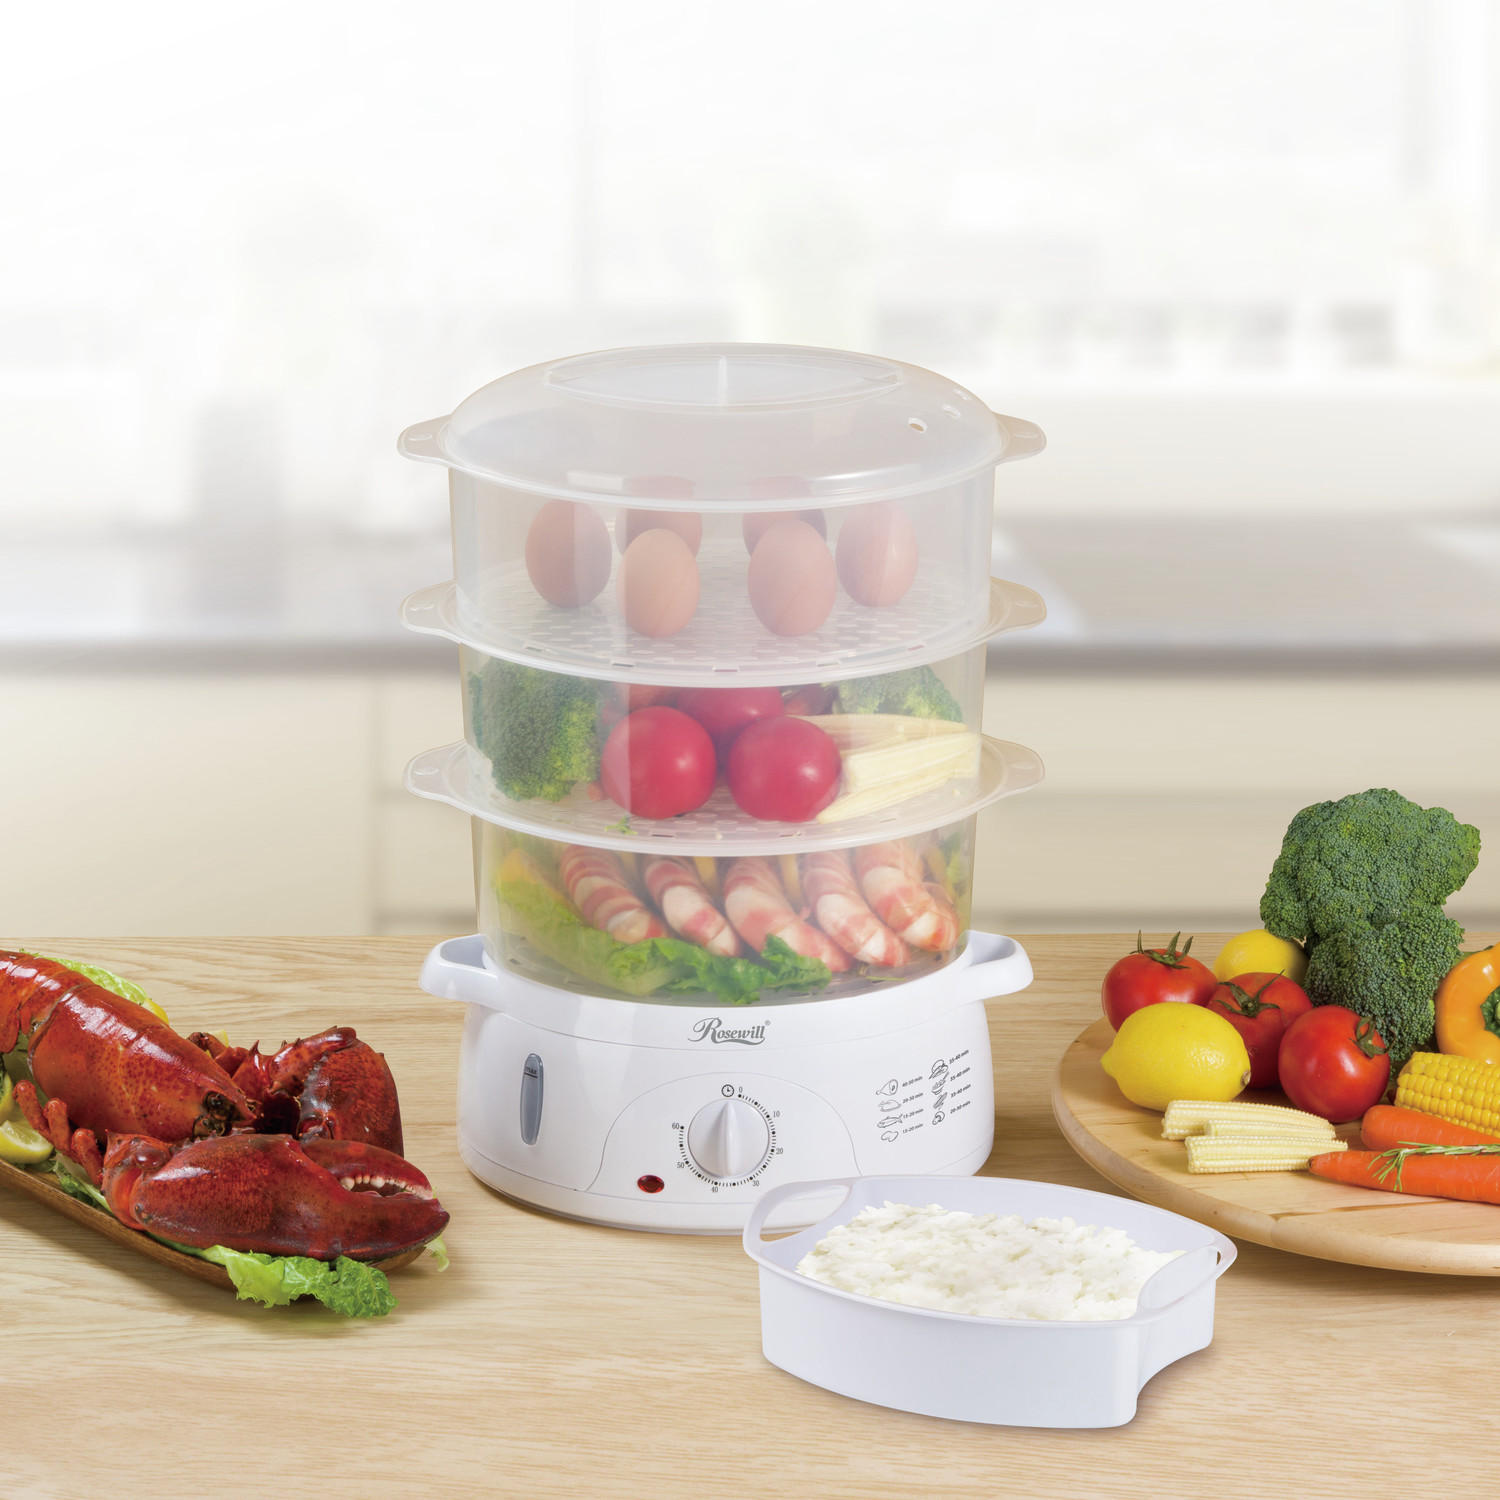 Rosewill RHST-15001 9.5-Quart (9L), 3-Tier Stackable BPA-free baskets Electric Food Steamer with Timer